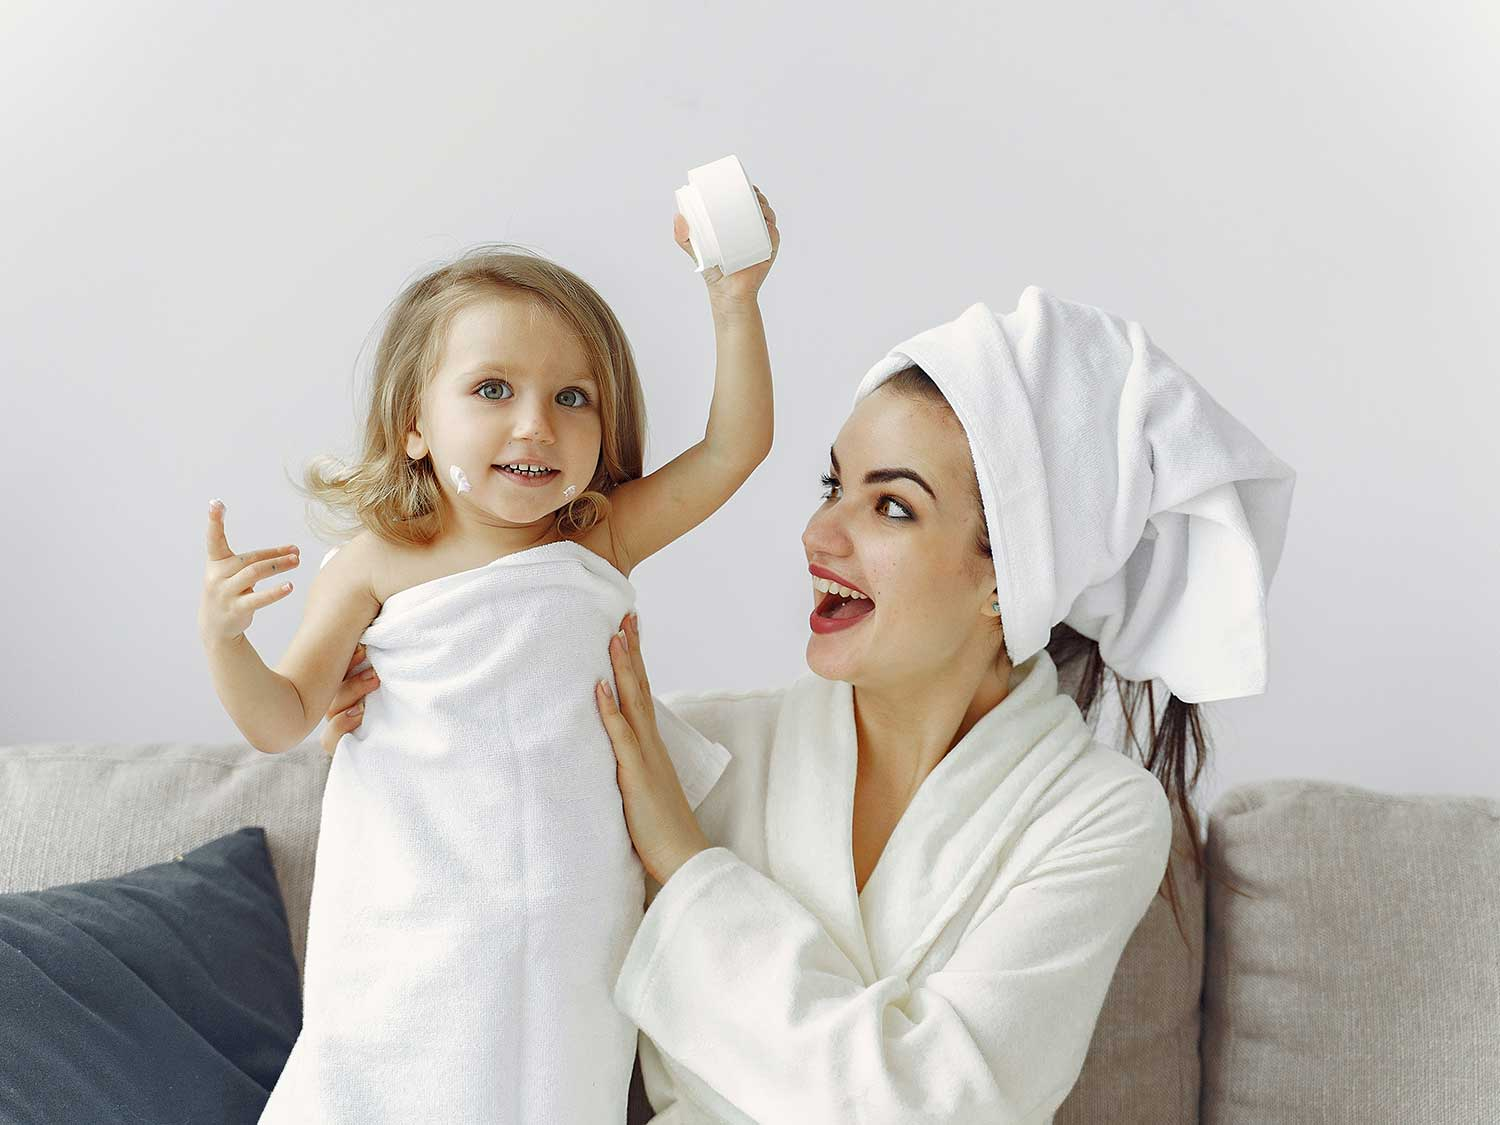 Girl and woman wrapped in towel and spa robe.